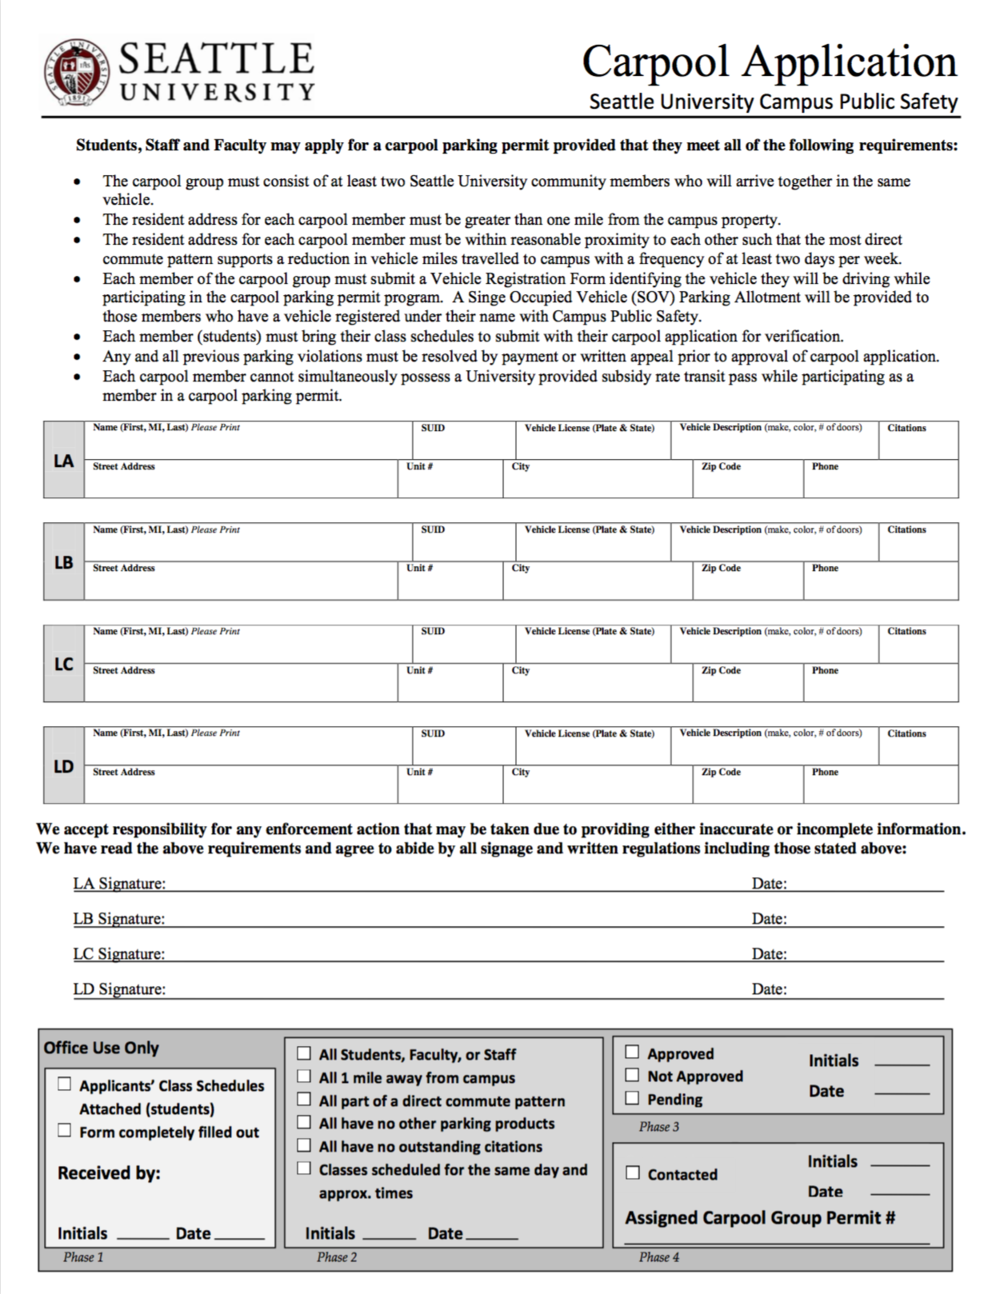 Seattle University   Carpool application for the Department of Transportation. This project consolidated 4 separate forms into a single one while still needing to adhere to department visual standards.